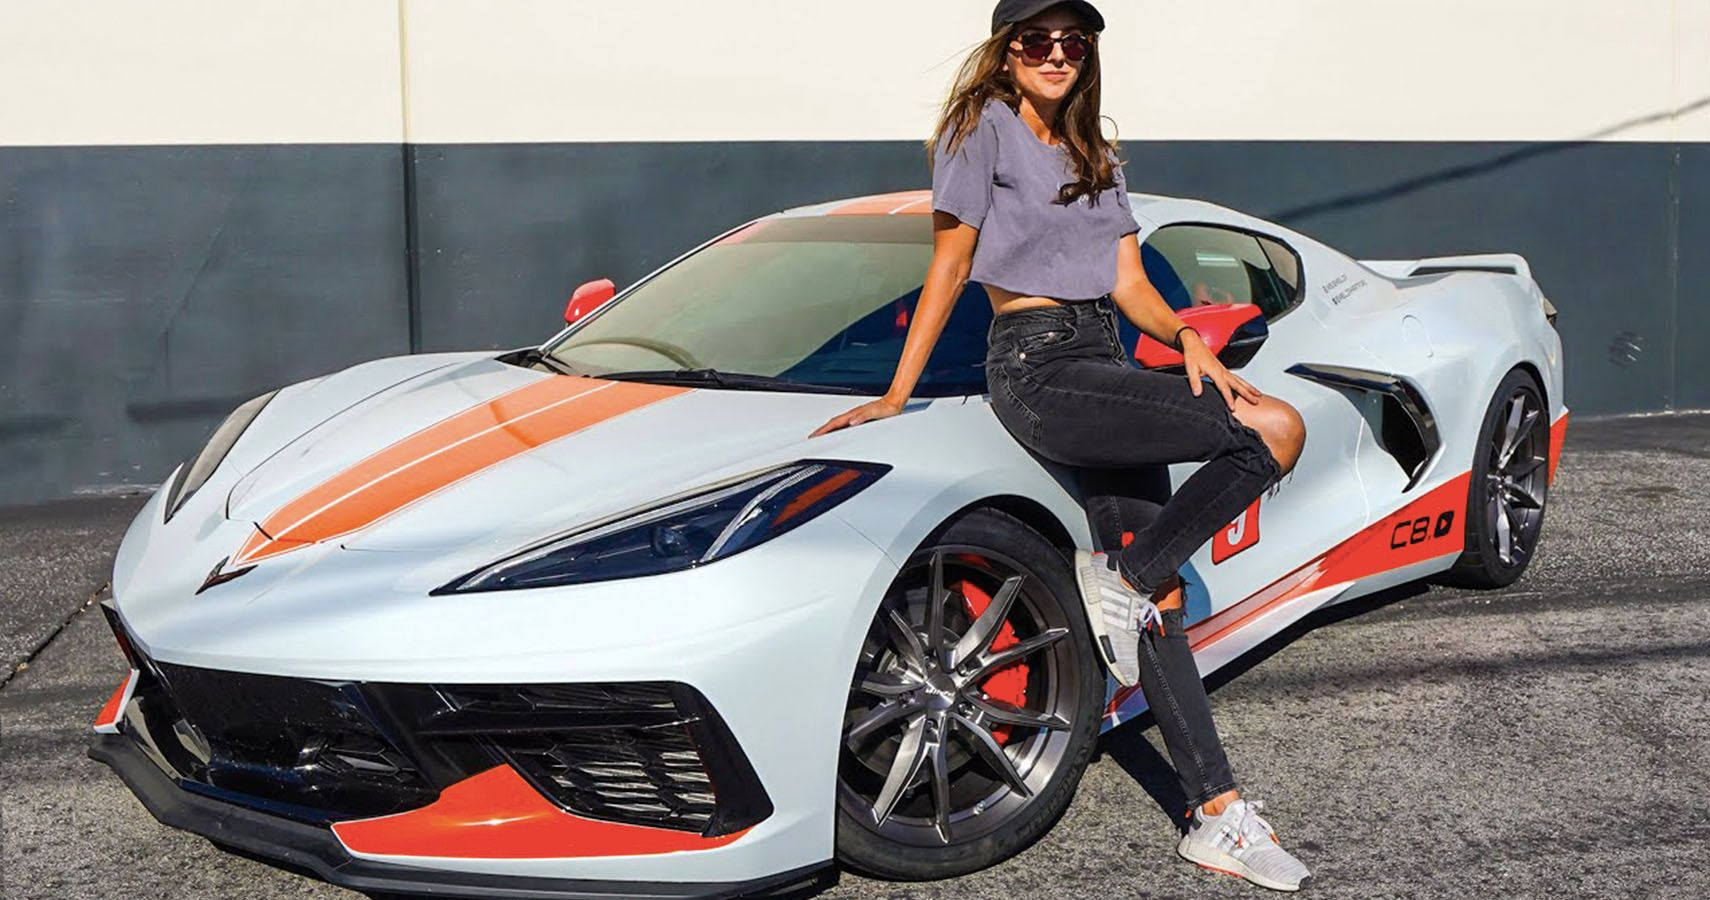 Emelia Hartford Reveals How Much Her Twin-Turbo C8 Cost To Build